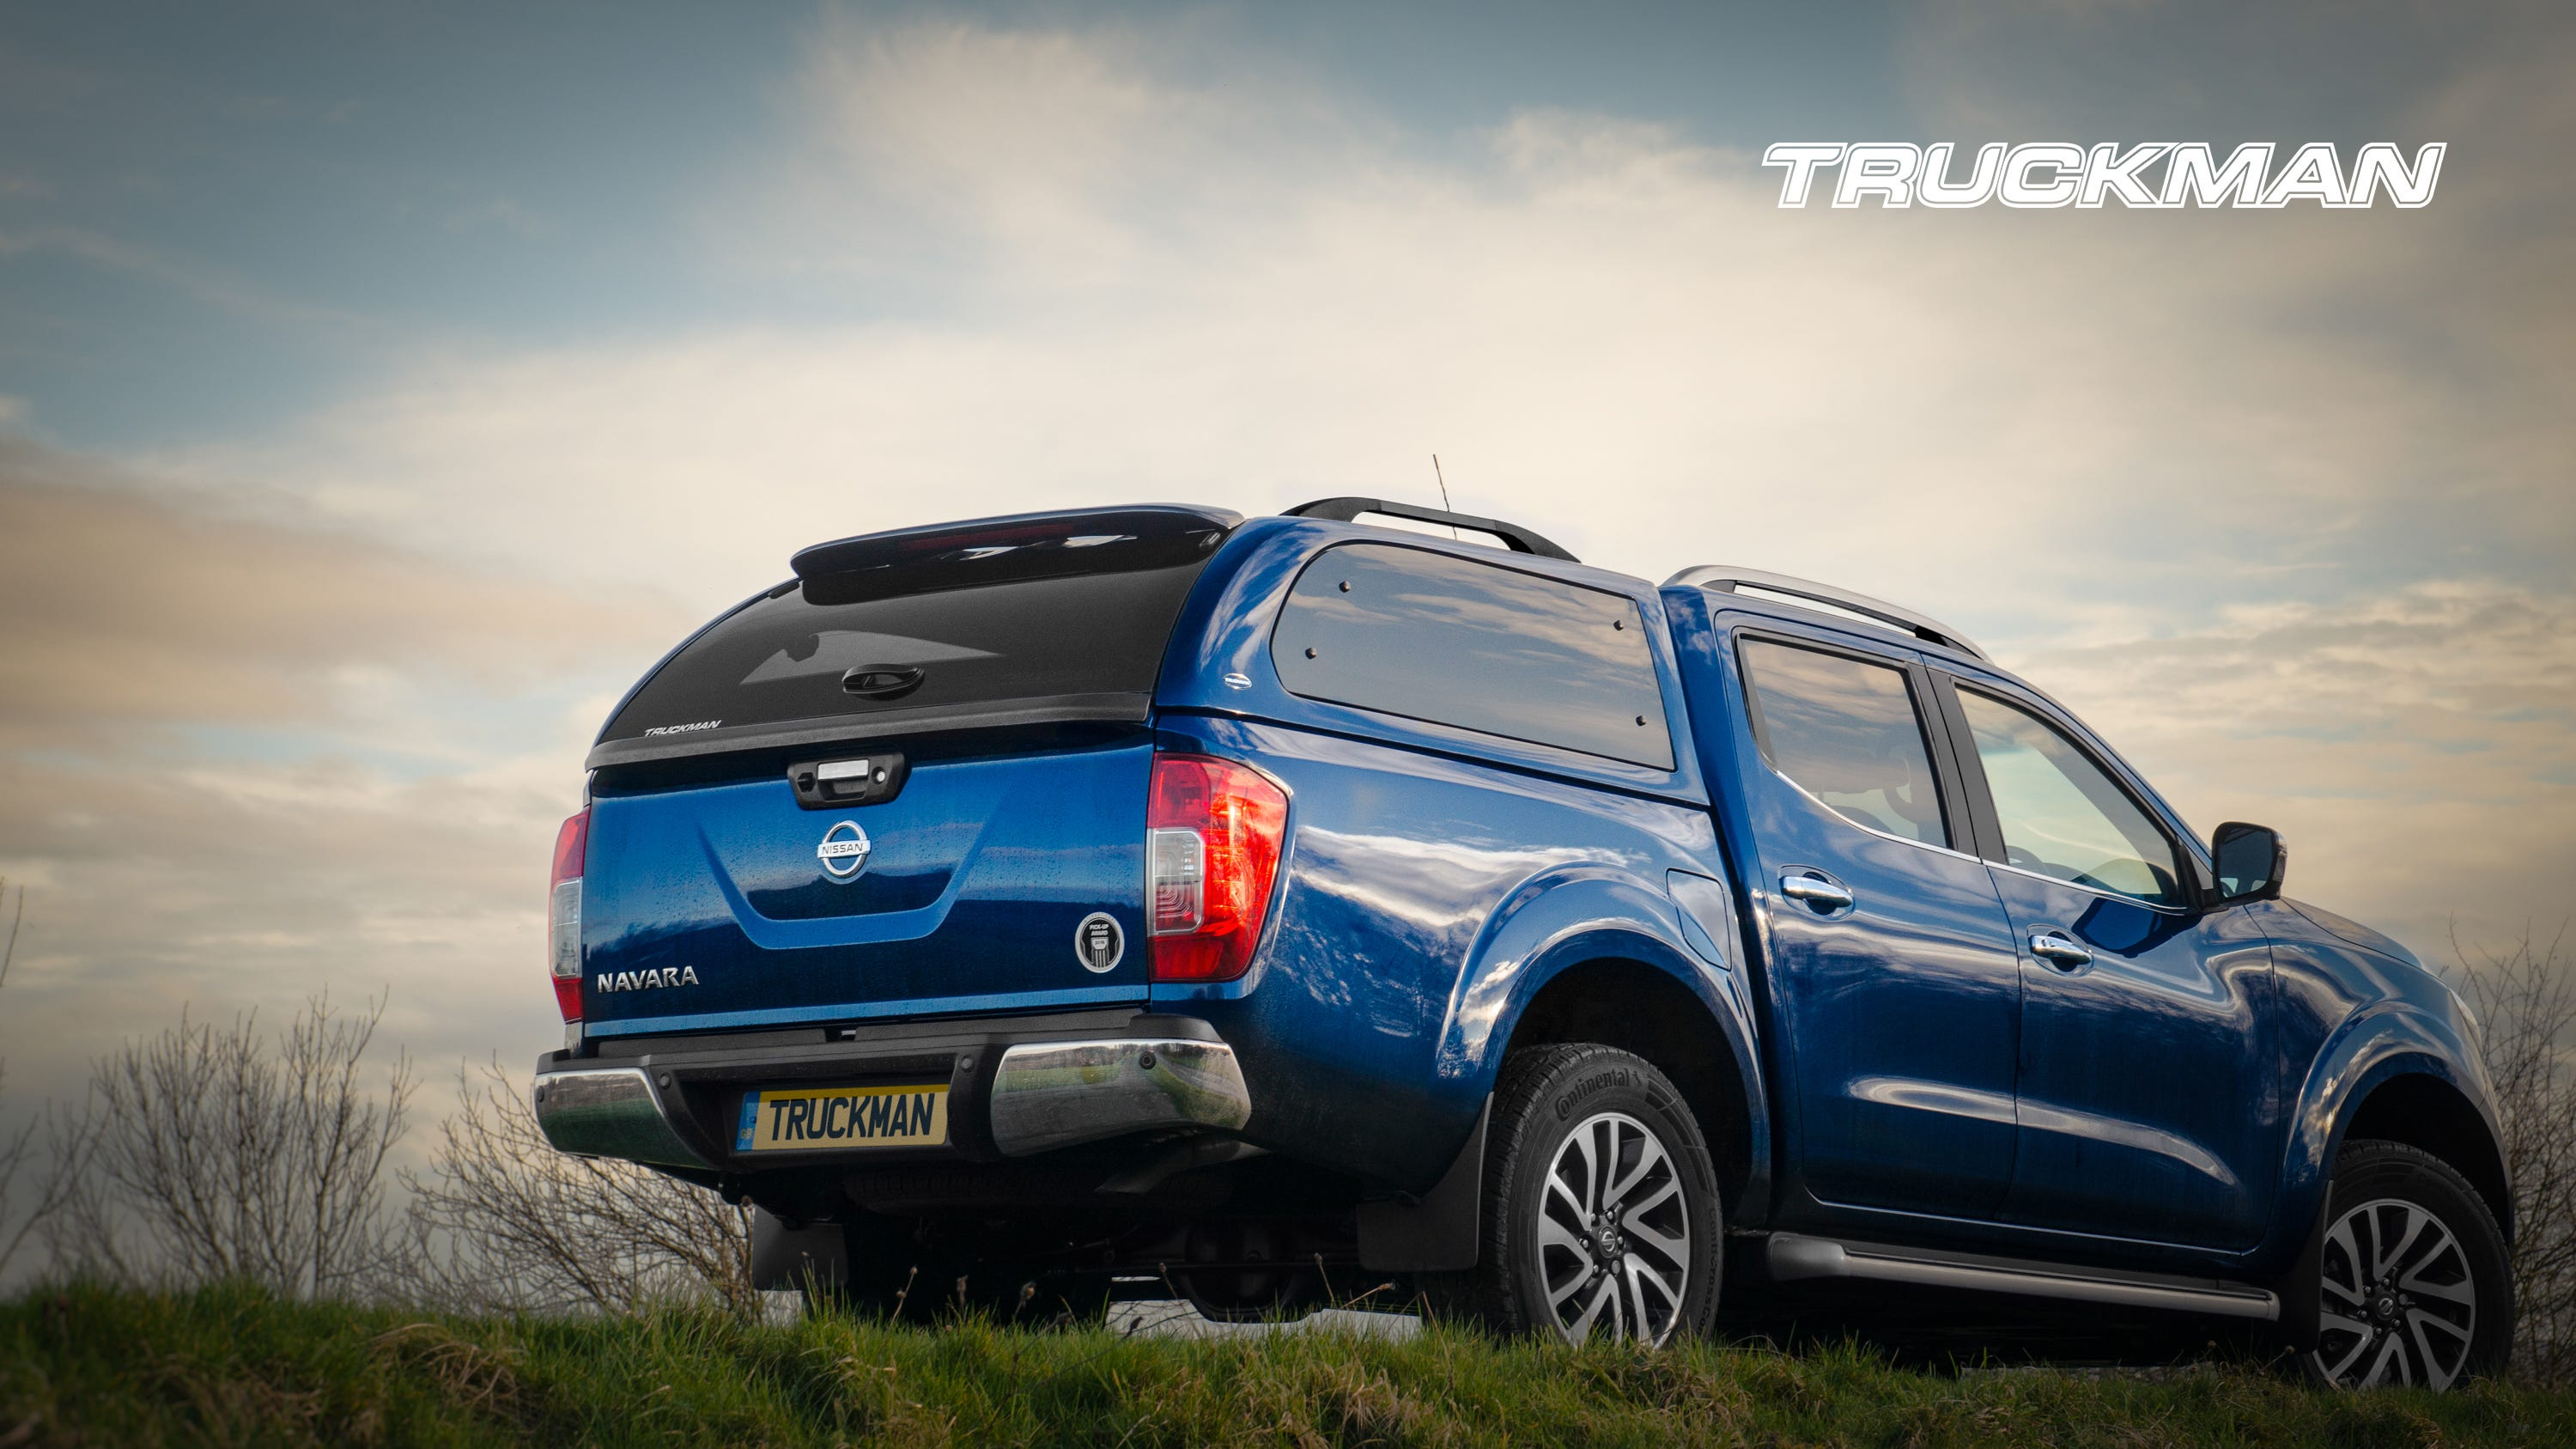 Nissan Navara Fitted With a Truckman Grand Hardtop Canopy (Landscape)